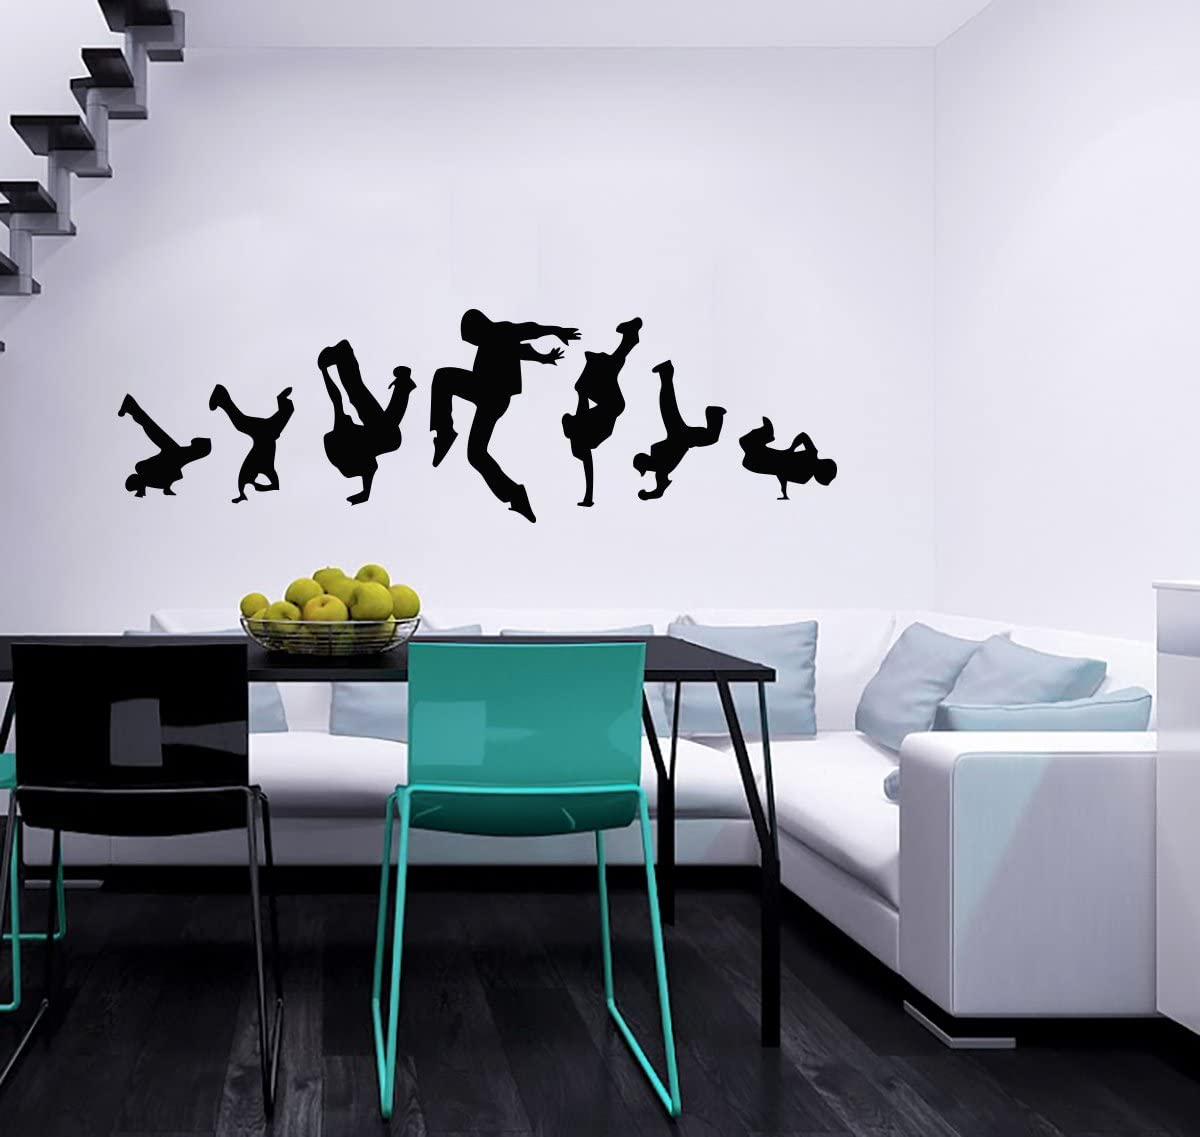 Guys Dancing Break Dance Wall Vinyl Decals Sticker Home Interior Decor For Any Room Housewares Mural Design Graphic Bedroom Music Dance Studio Wall Decal 5504 Amazon Com